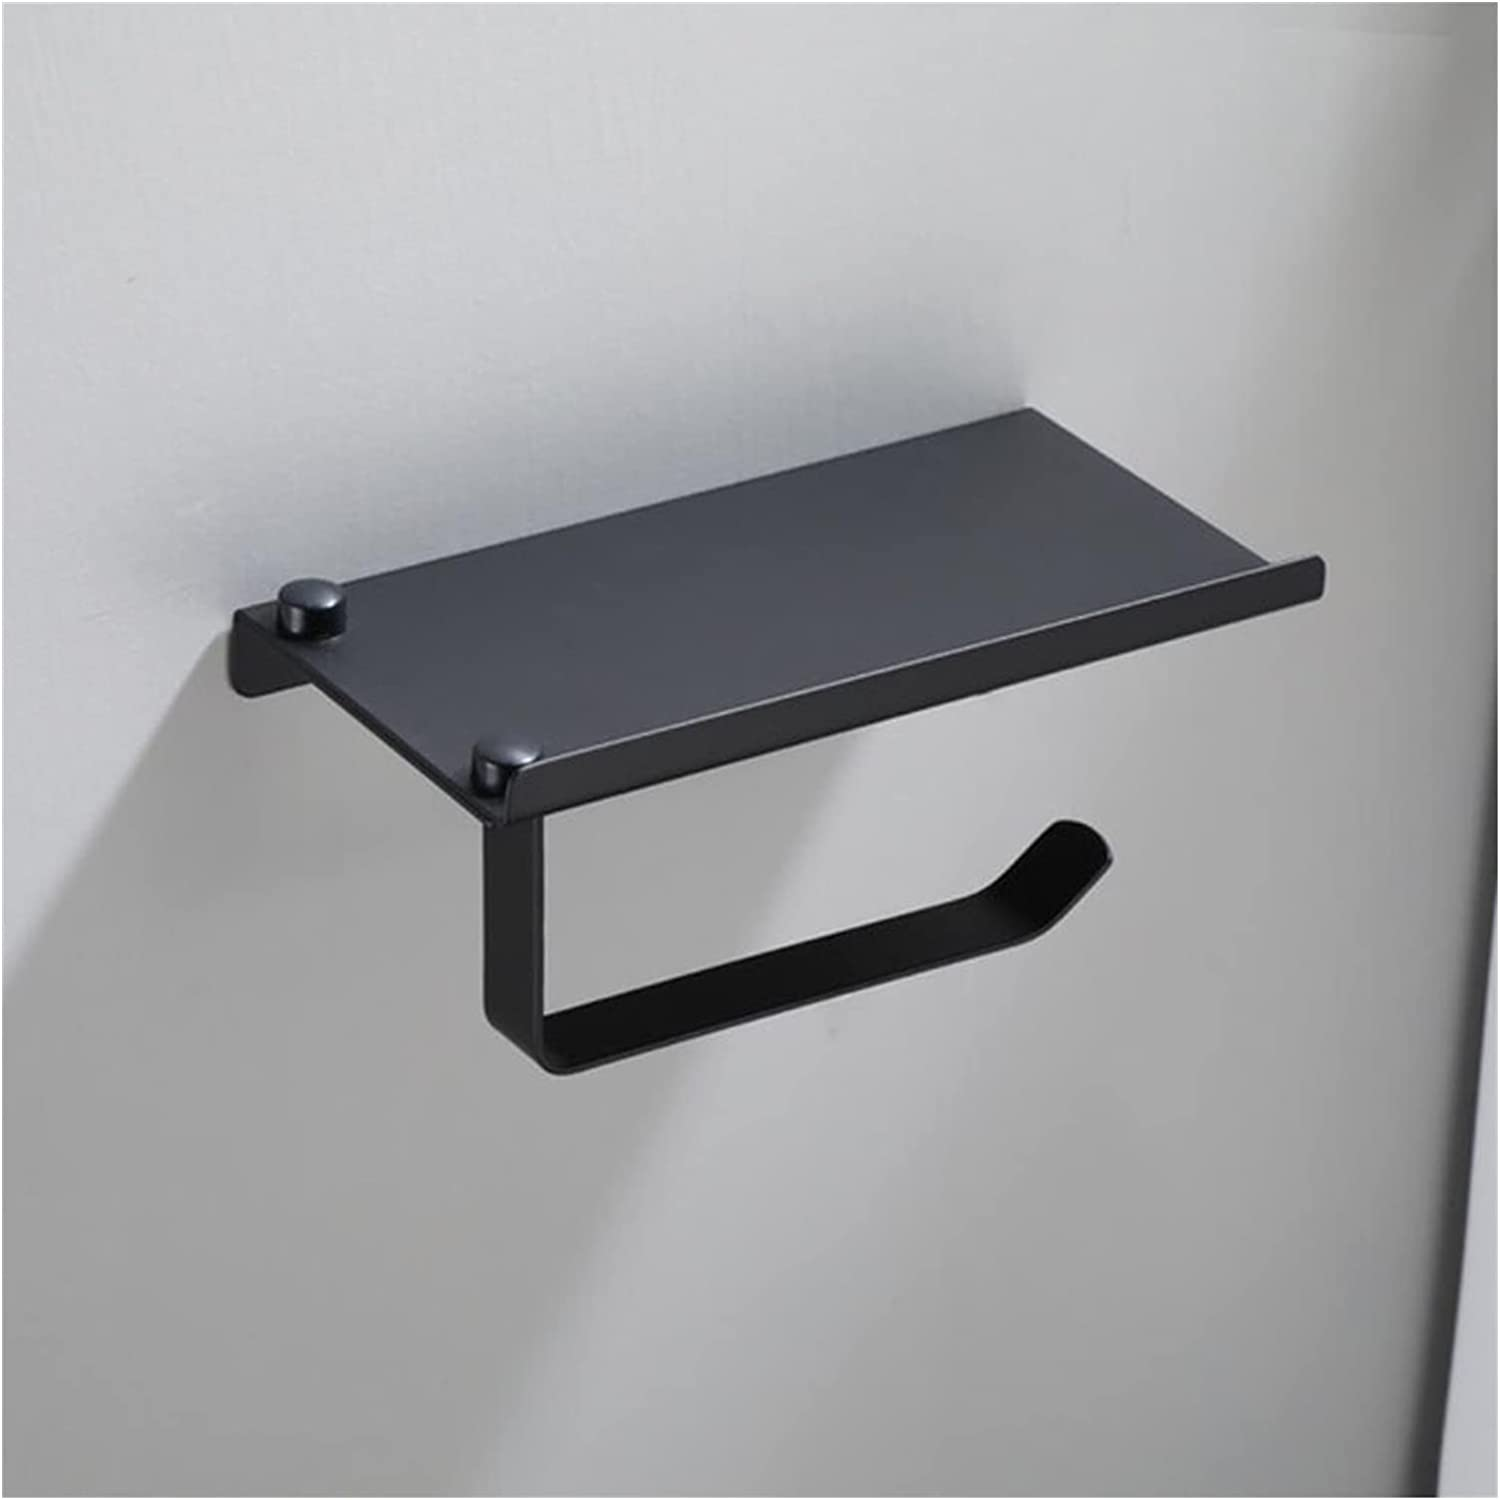 Chuyuhao Toilet Paper Holder Wall 2021new shipping free Black Hol Animer and price revision Mounted